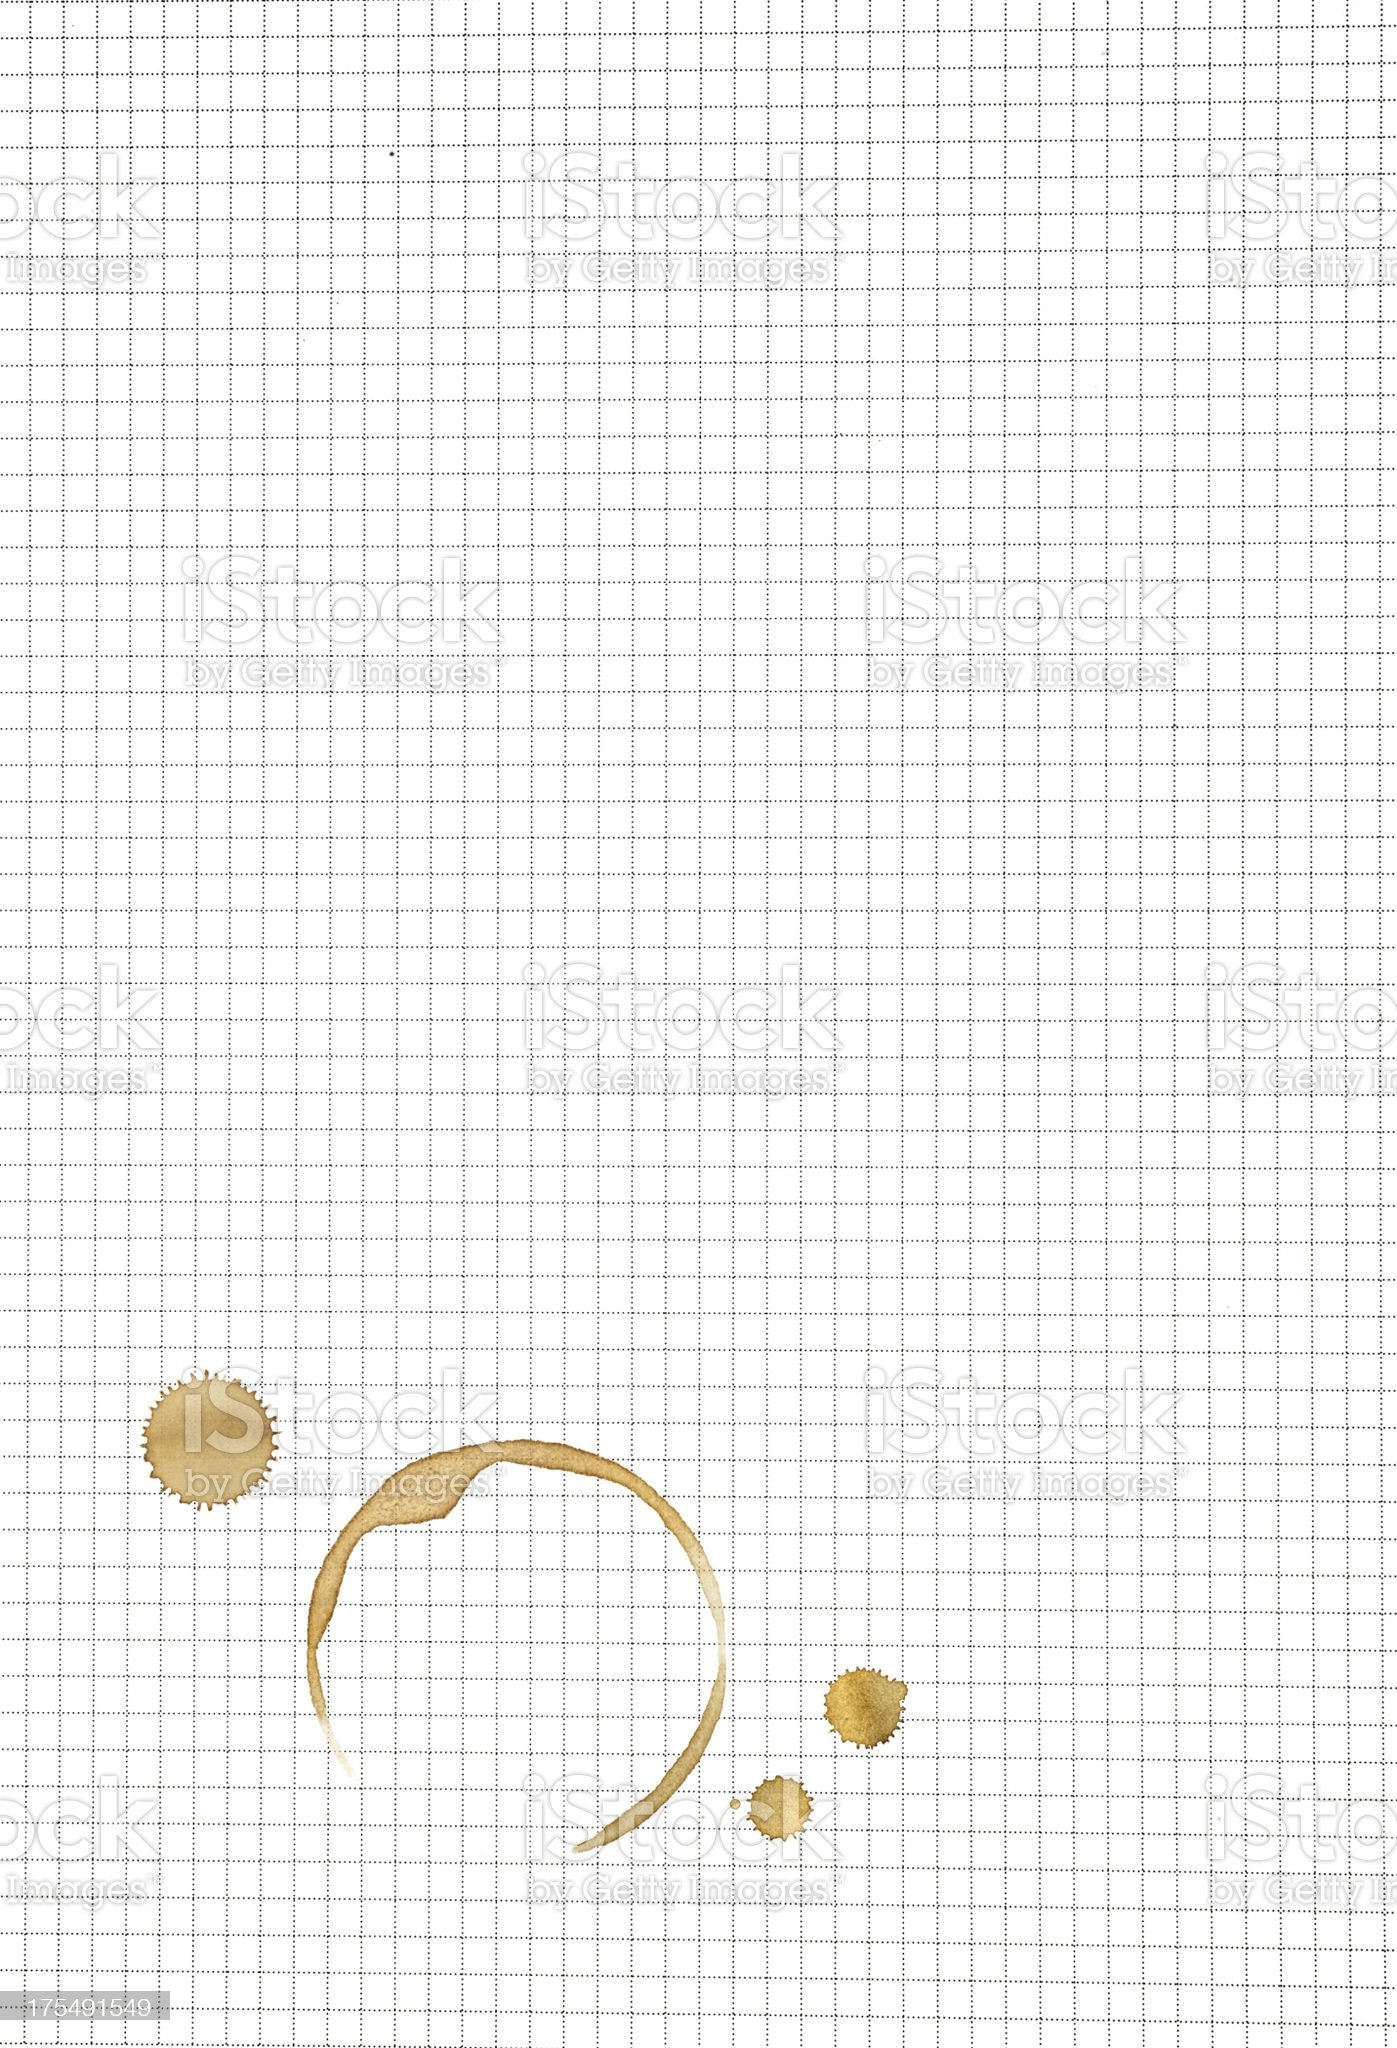 coffee stain Klecks on working paper royalty-free stock photo